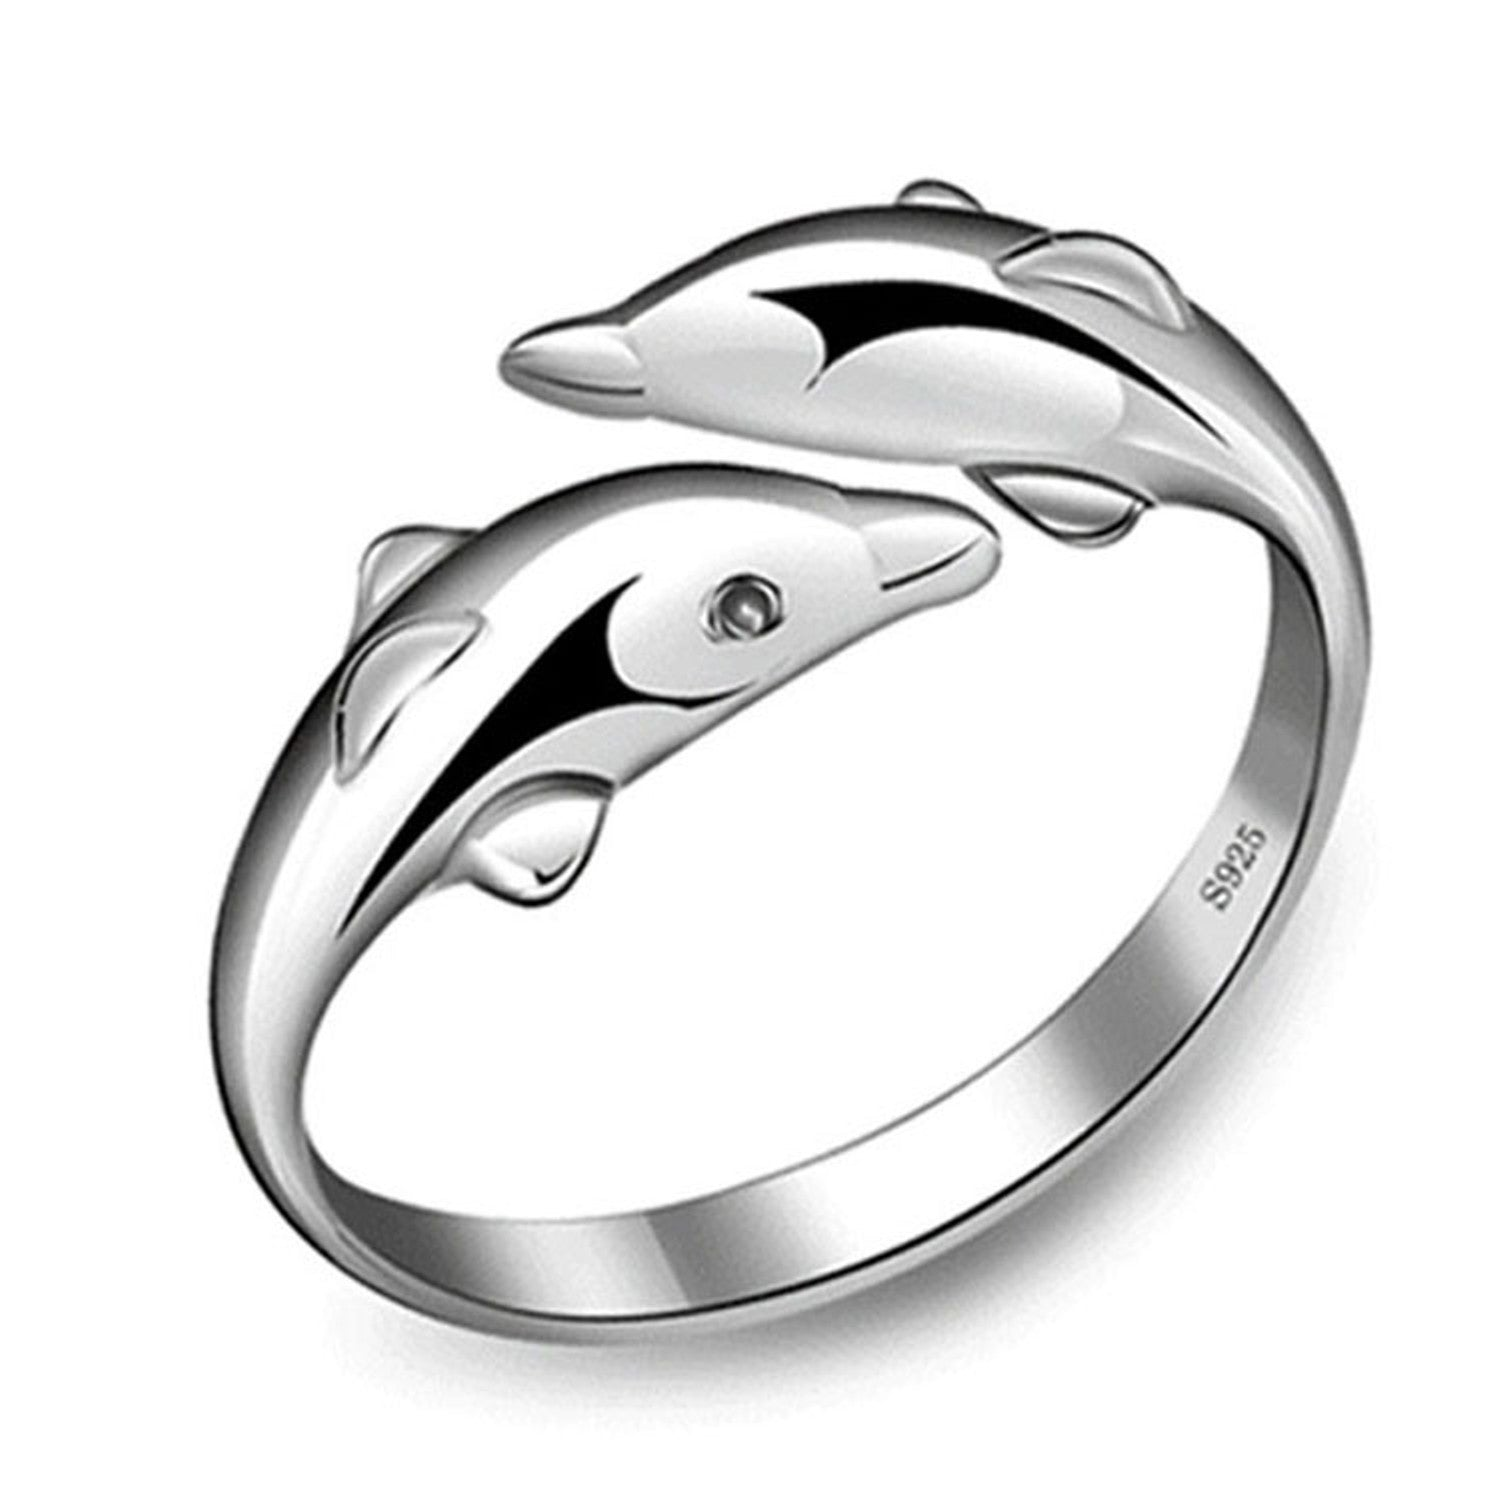 rings supermall silver meets unknown couple or live technical happiness